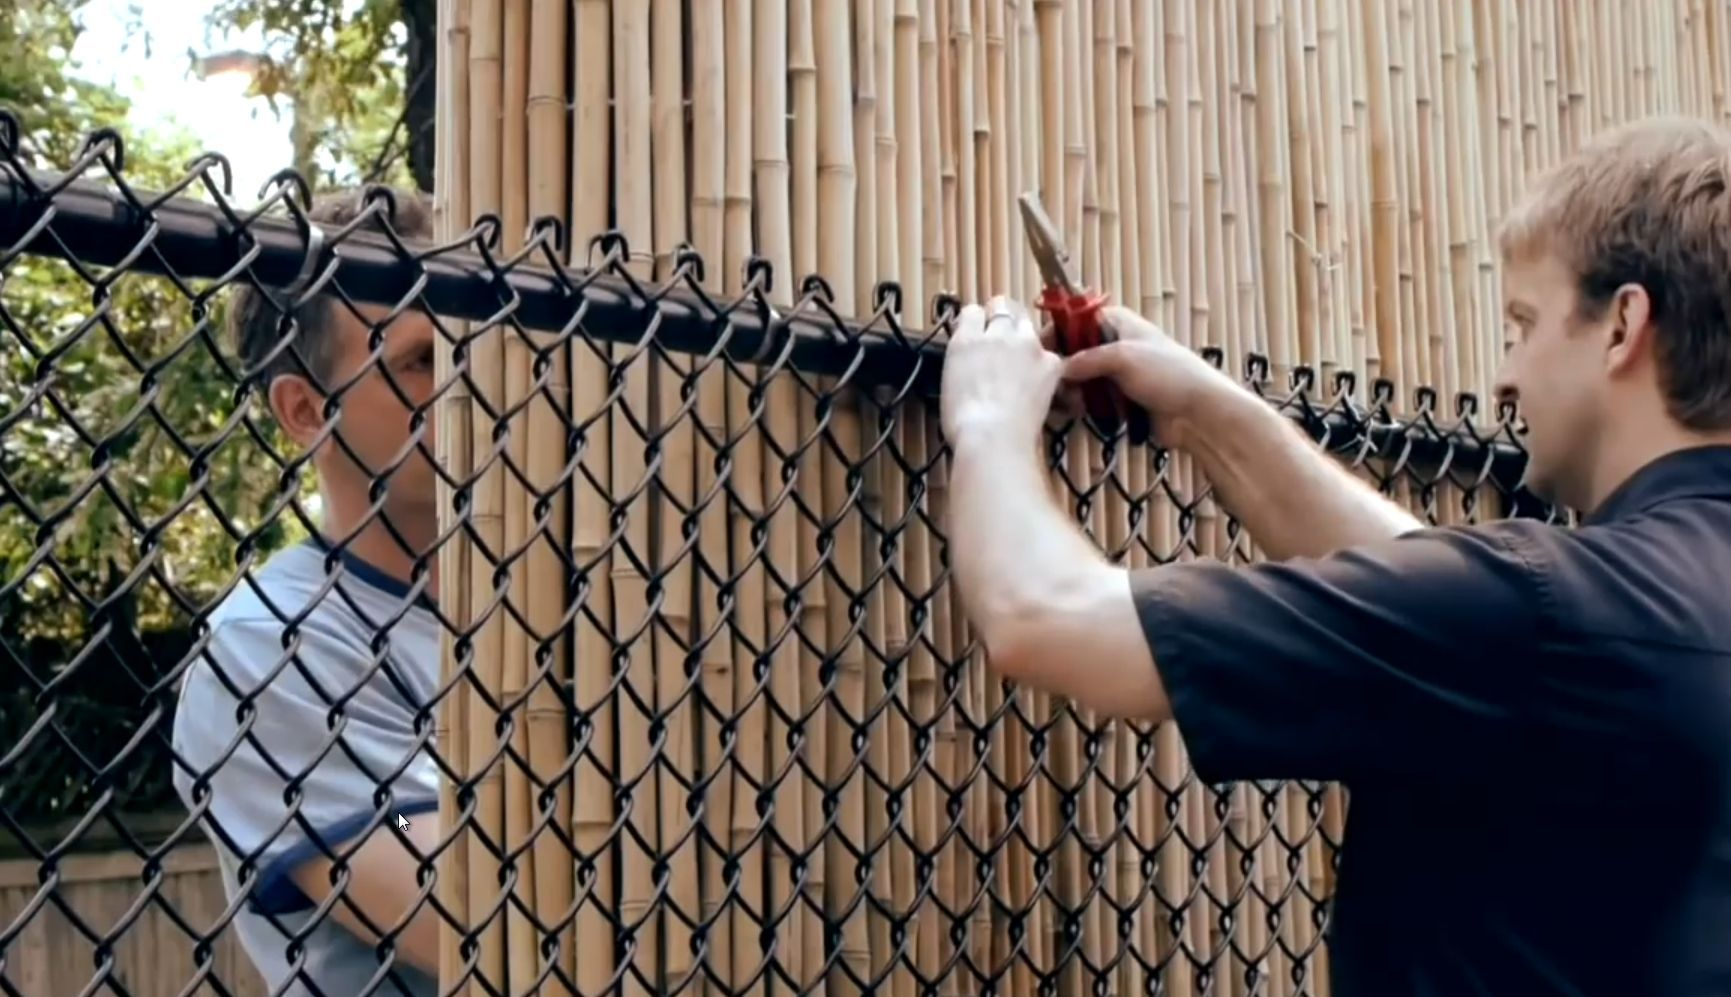 How Can You Cover Up Your Ugly Chain Link Fence Here Are Several Ideas That Help Retain It But Make Look More Beautiful And Increase Privacy